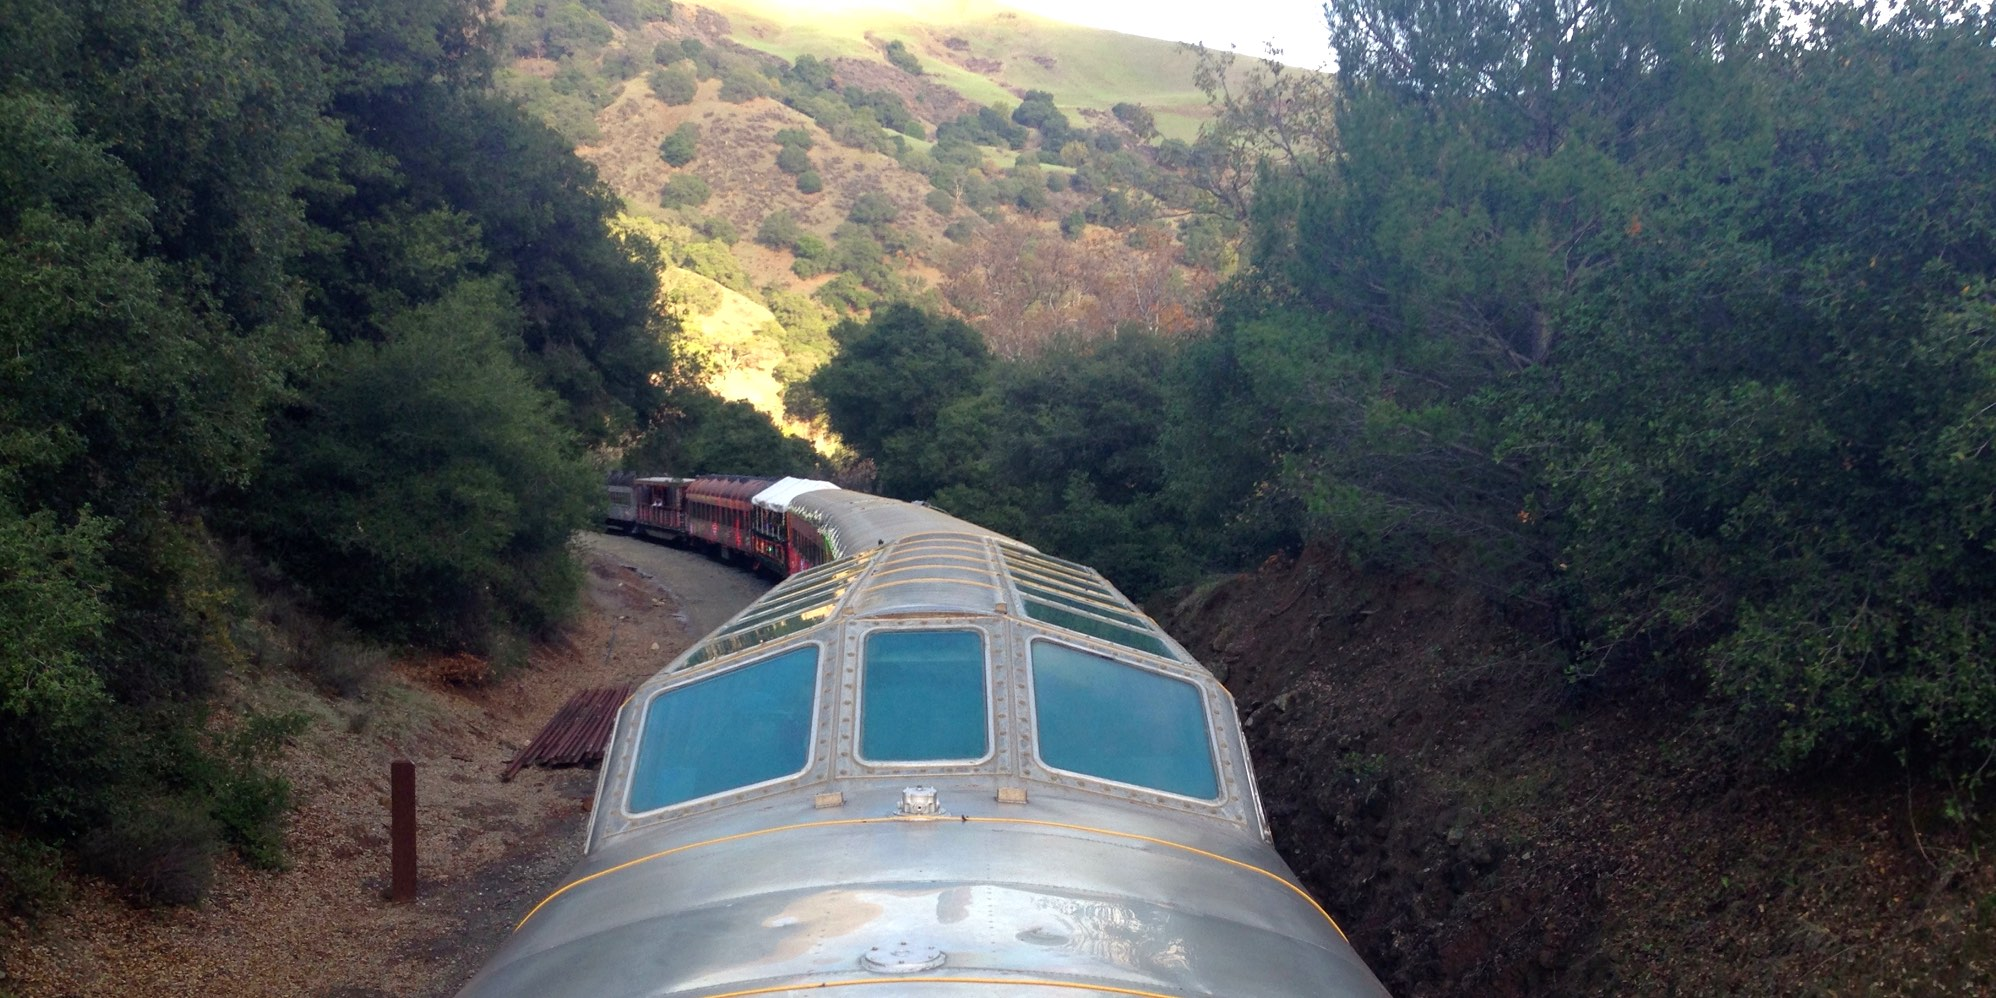 Niles Canyon Train of Lights Dome Car winding through the canyon